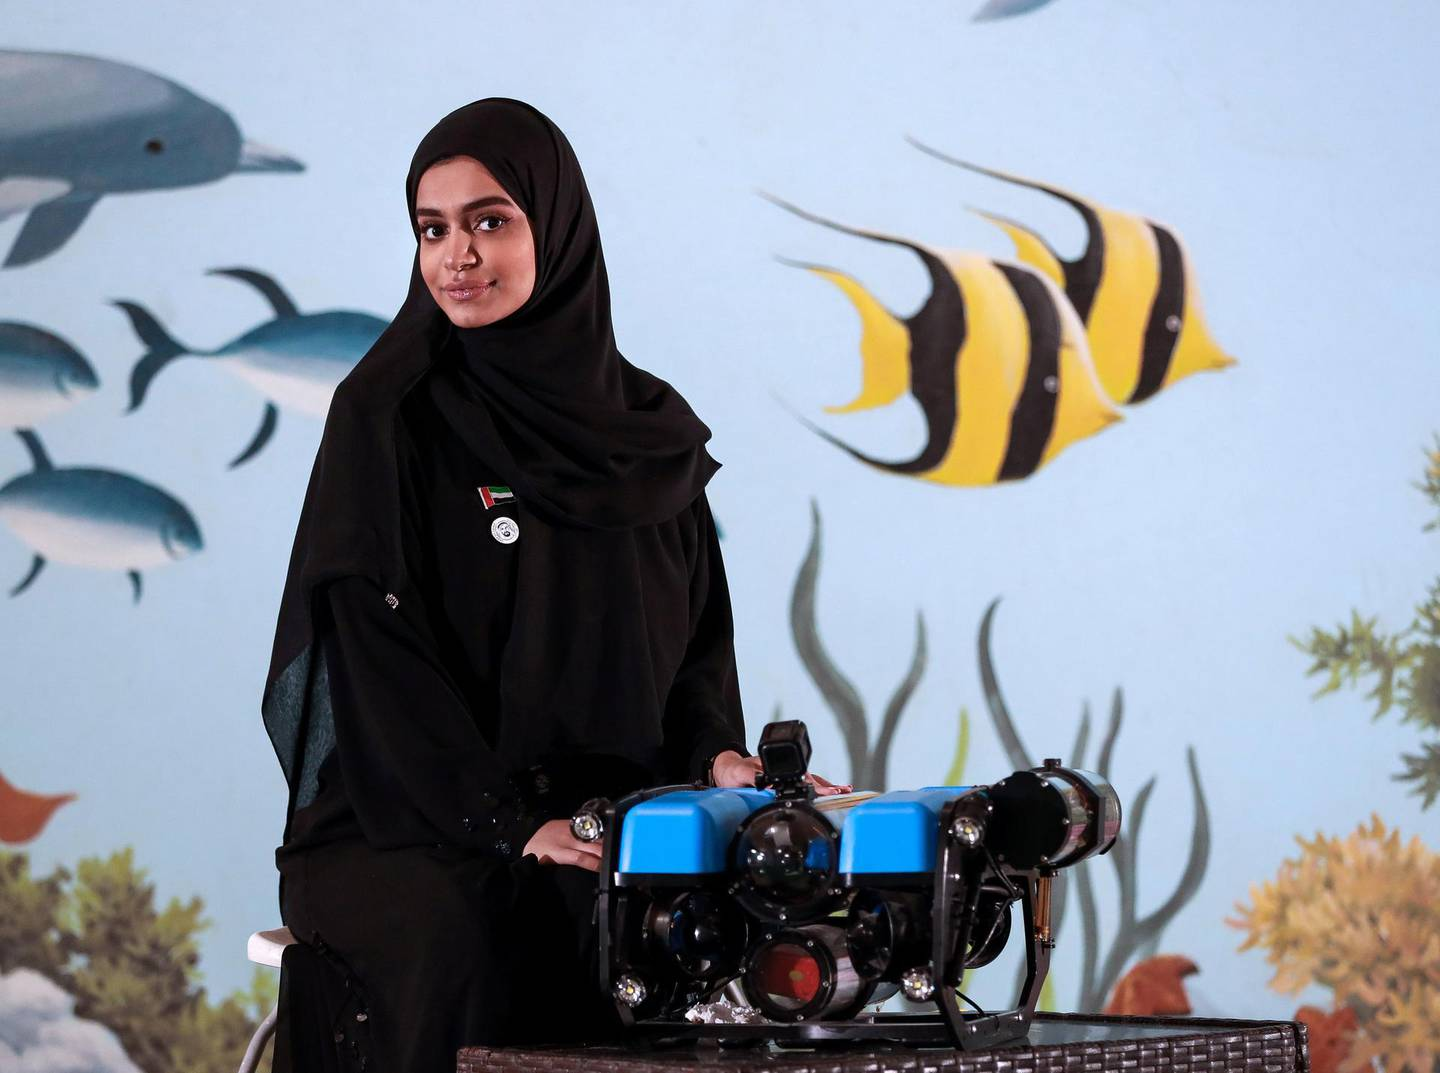 Abu Dhabi, U.A.E., November 28, 2018.  Sara Al Ameri and her smart submarine equipped with sensors and cameras to record data as part of a University Innovation Programme. Victor Besa / The NationalSection:  NAReporter:  Ramola Talwar